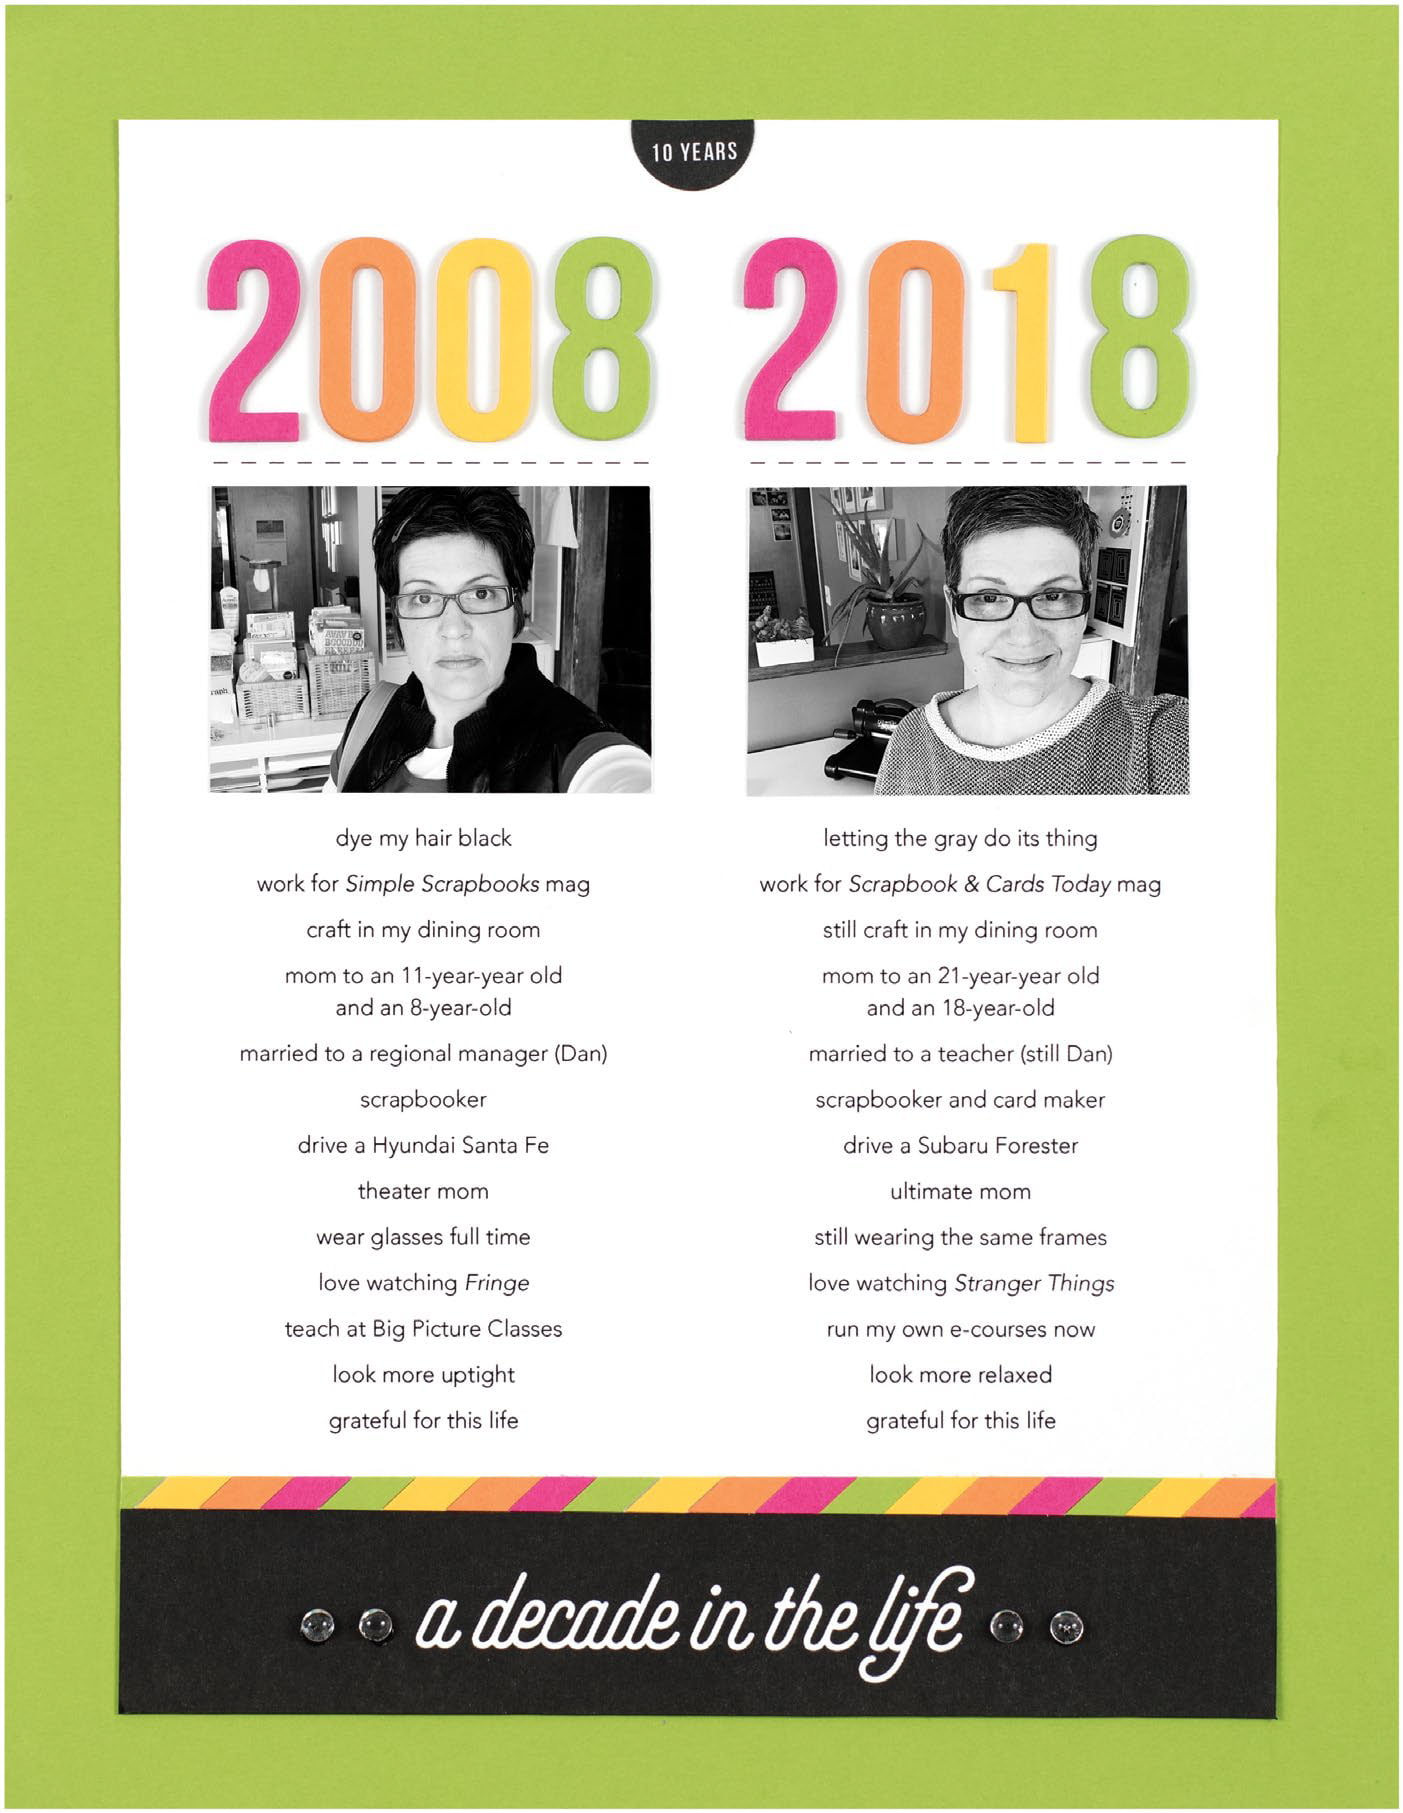 A Decade in the Life by Cathy Zielske - Scrapbook & Cards Today Spring 2018